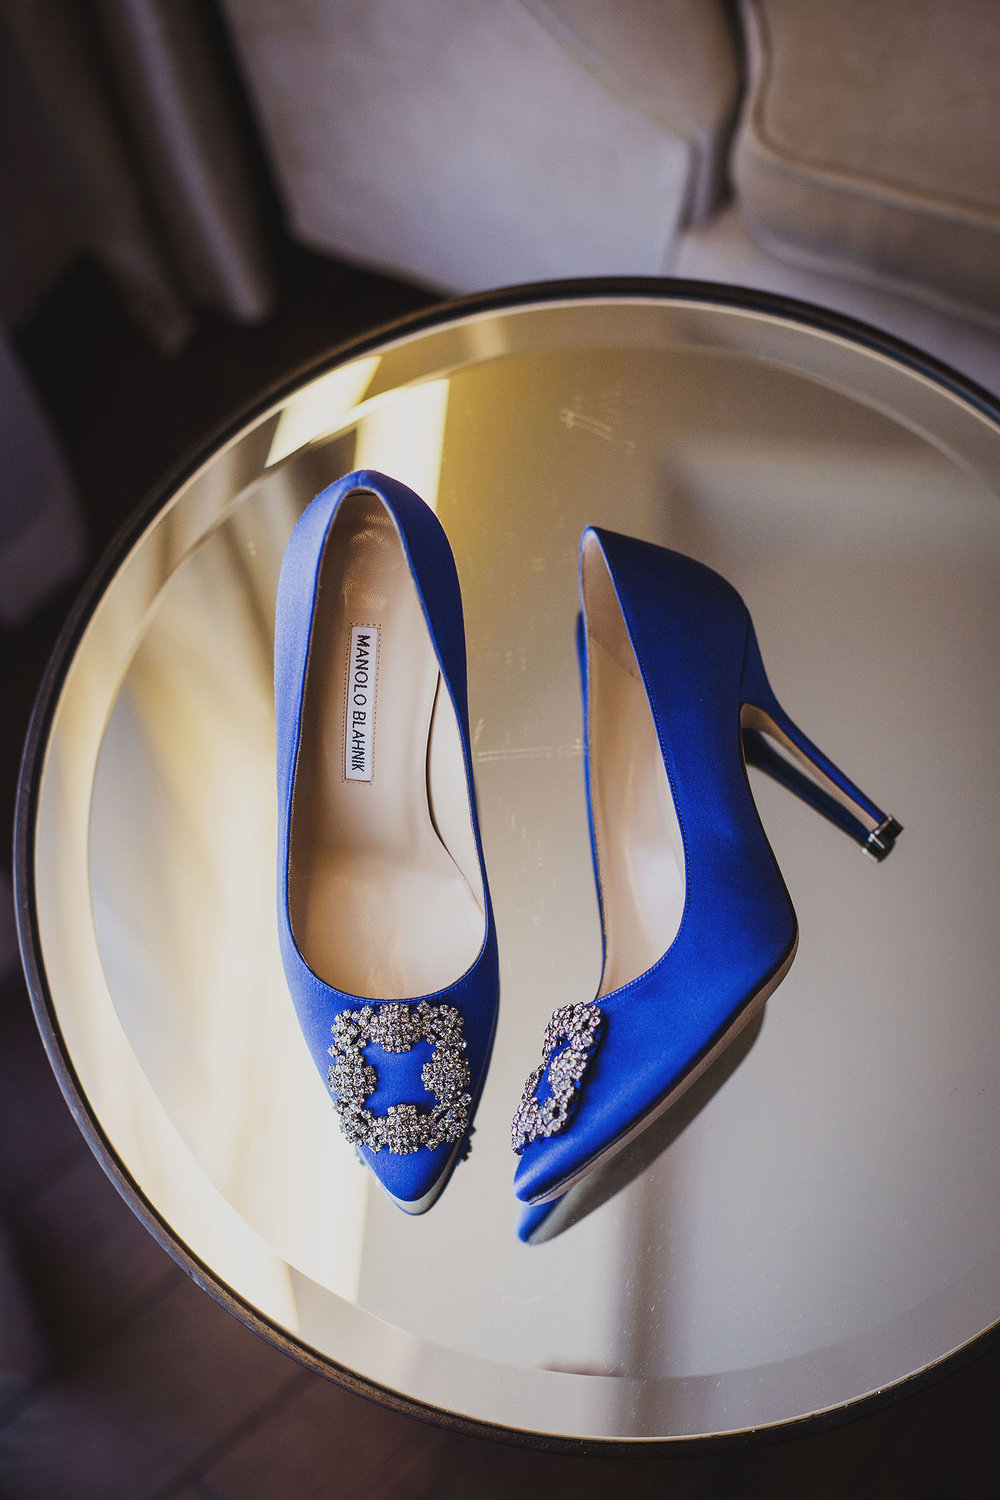 manolo blahnik shoes bridal prep corinthia hotel london wedding photographer